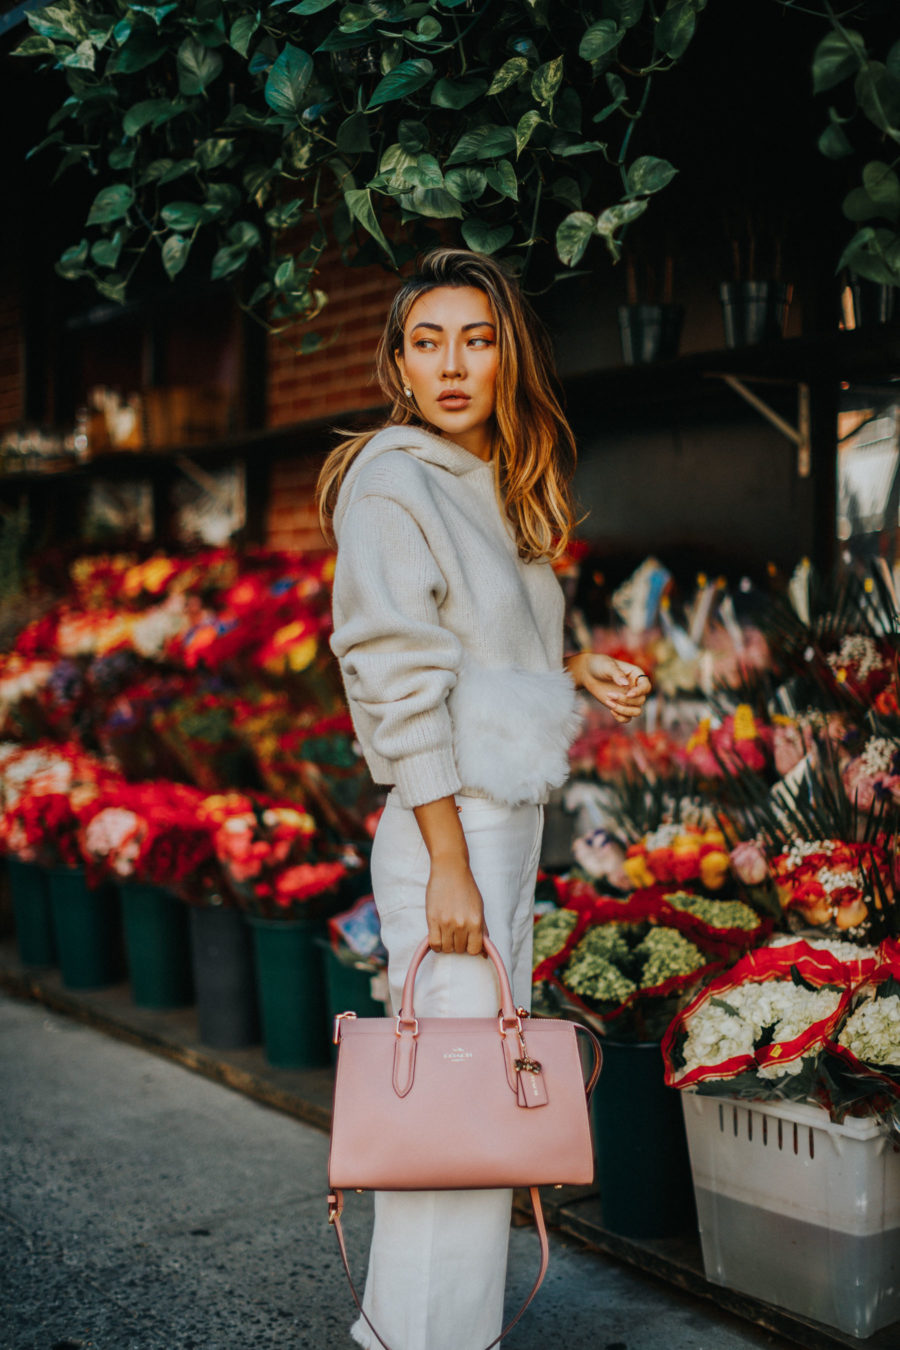 fashion blogger jessica wang shares favorite winter fashion brands wearing Tibi Hoodie with DL1961 Jeans and Coach x Selena Gomez tote bag // Notjessfashion.com